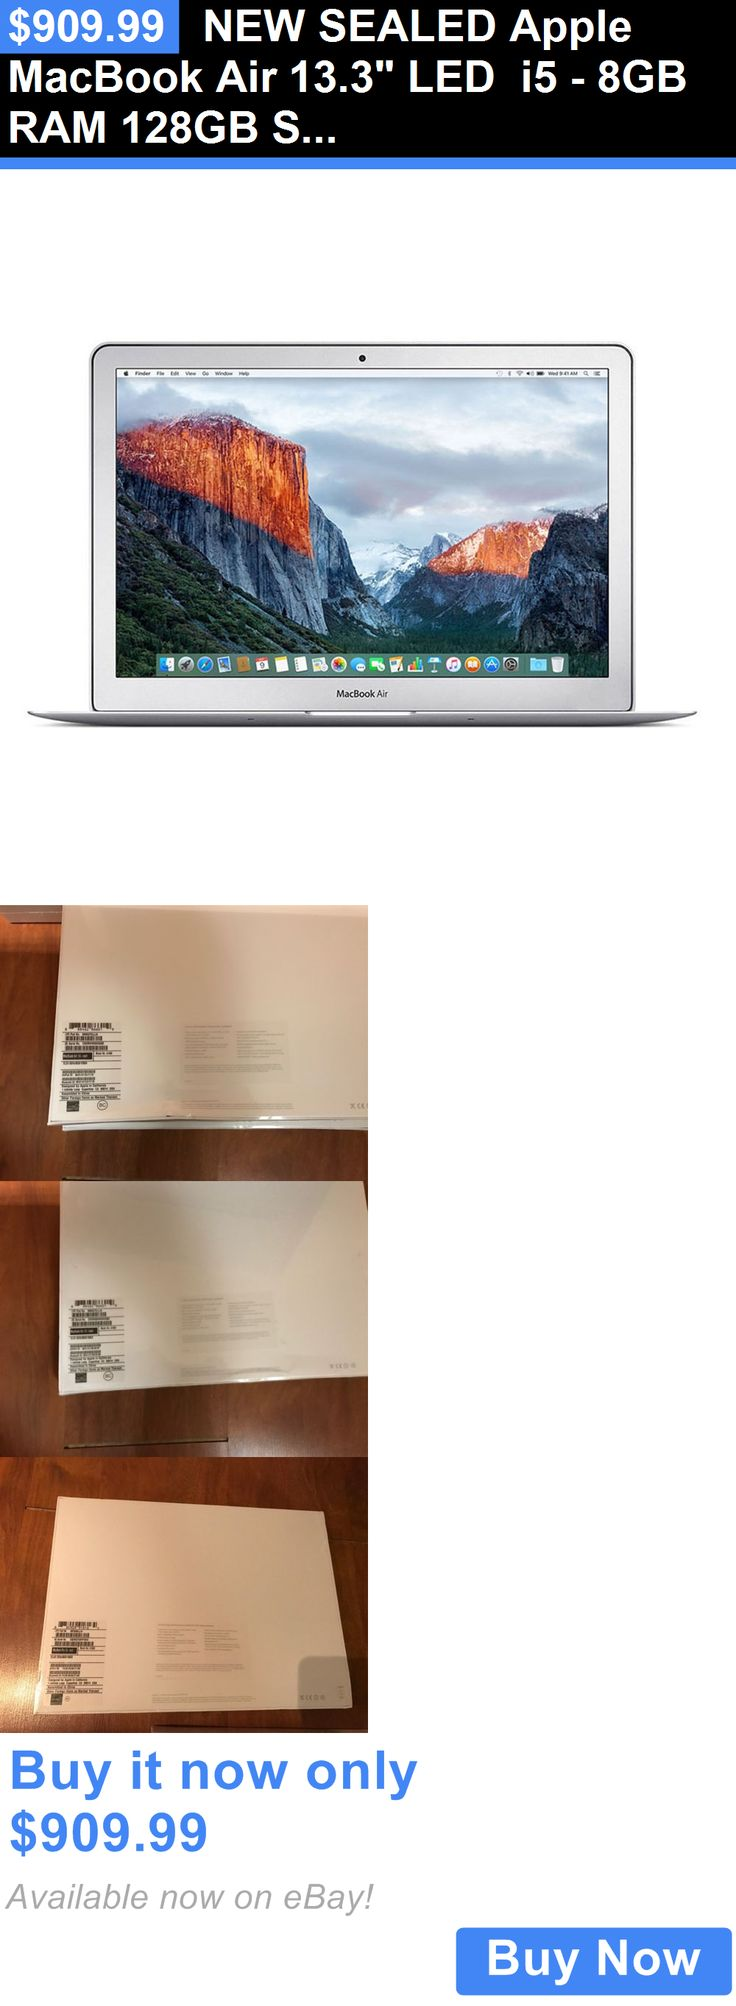 general for sale: New Sealed Apple Macbook Air 13.3 Led I5 - 8Gb Ram 128Gb Storage Mmgf2ll/A BUY IT NOW ONLY: $909.99